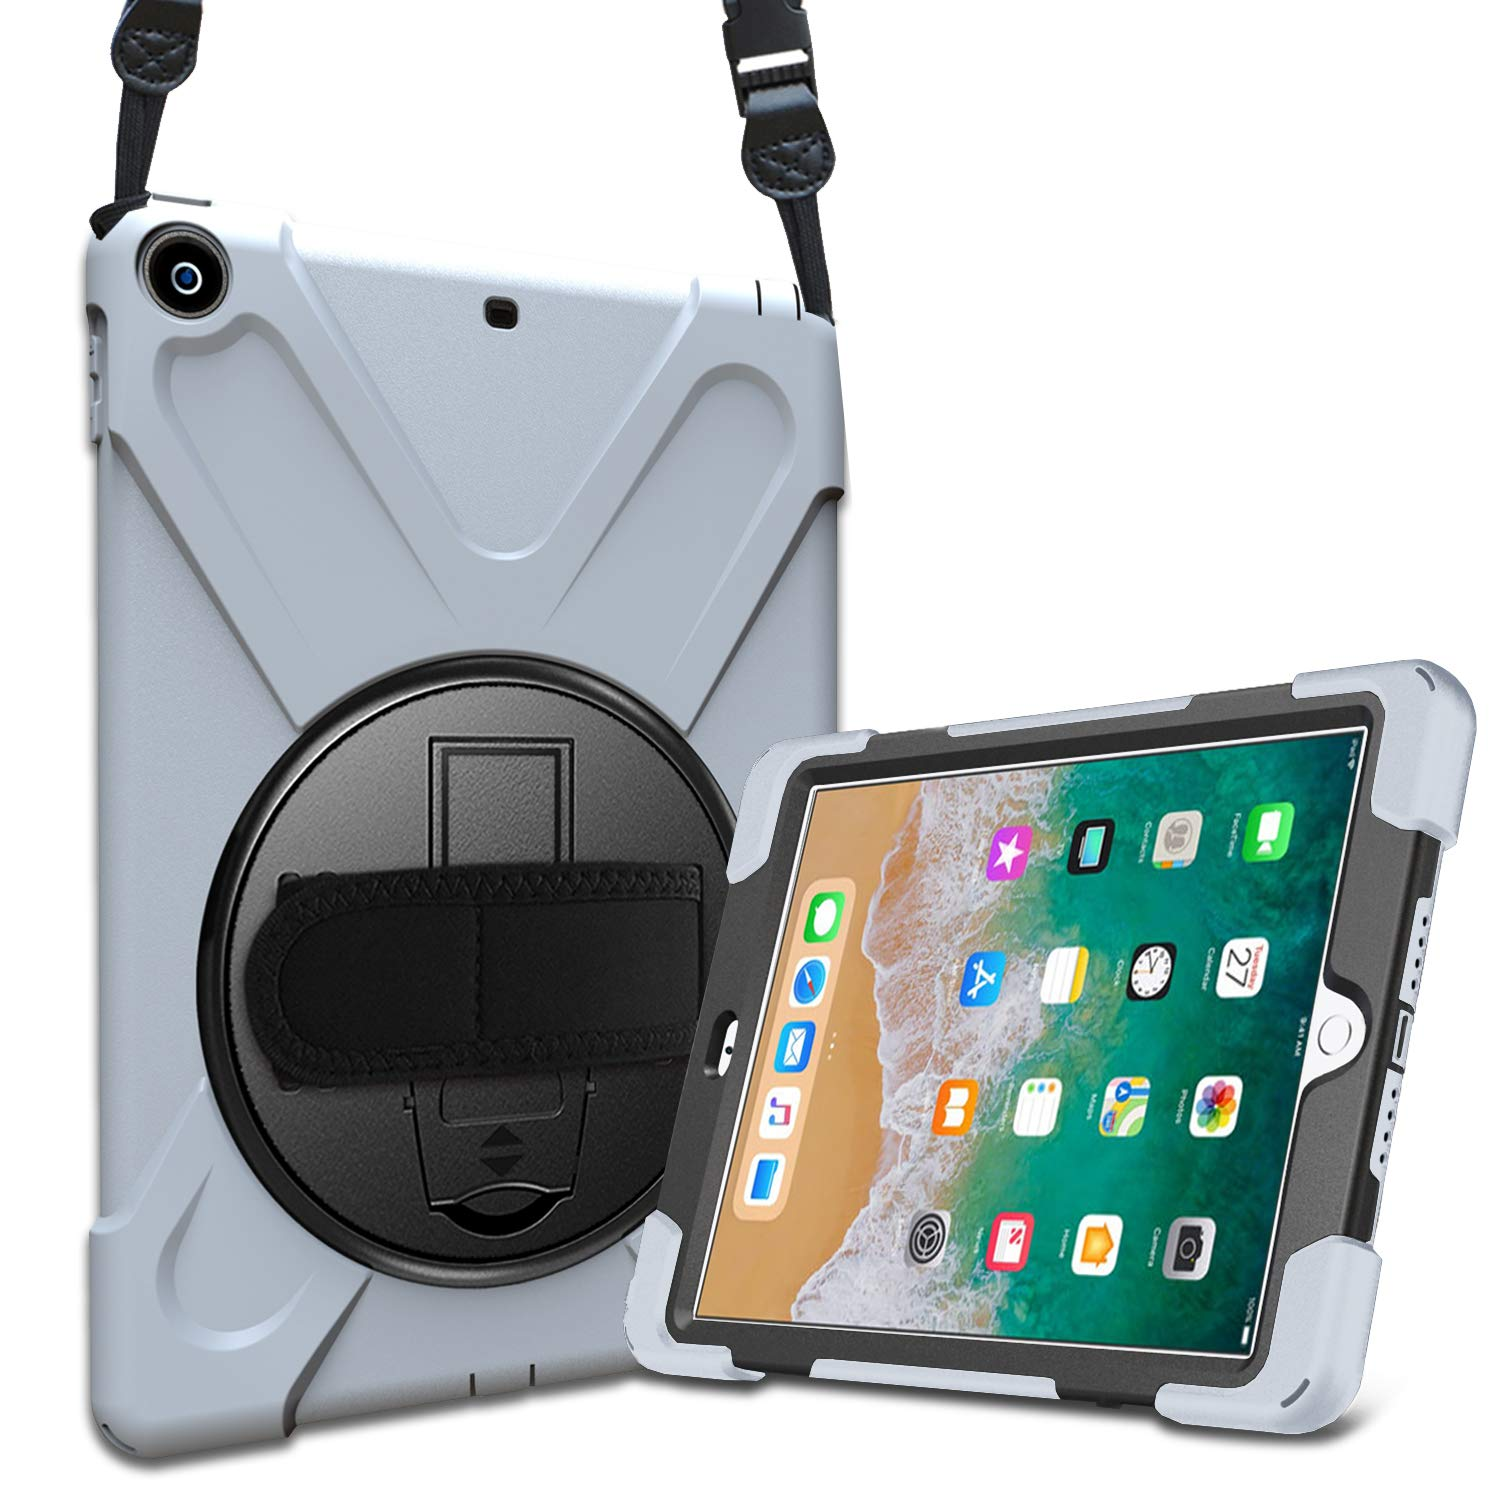 ProCase iPad 9.7 Case 2018/2017, Rugged Heavy Duty Shockproof 360 Degree Rotatable Kickstand Protective Cover Case for Apple iPad 6th 5th Gen 9.7 Inch -Grey